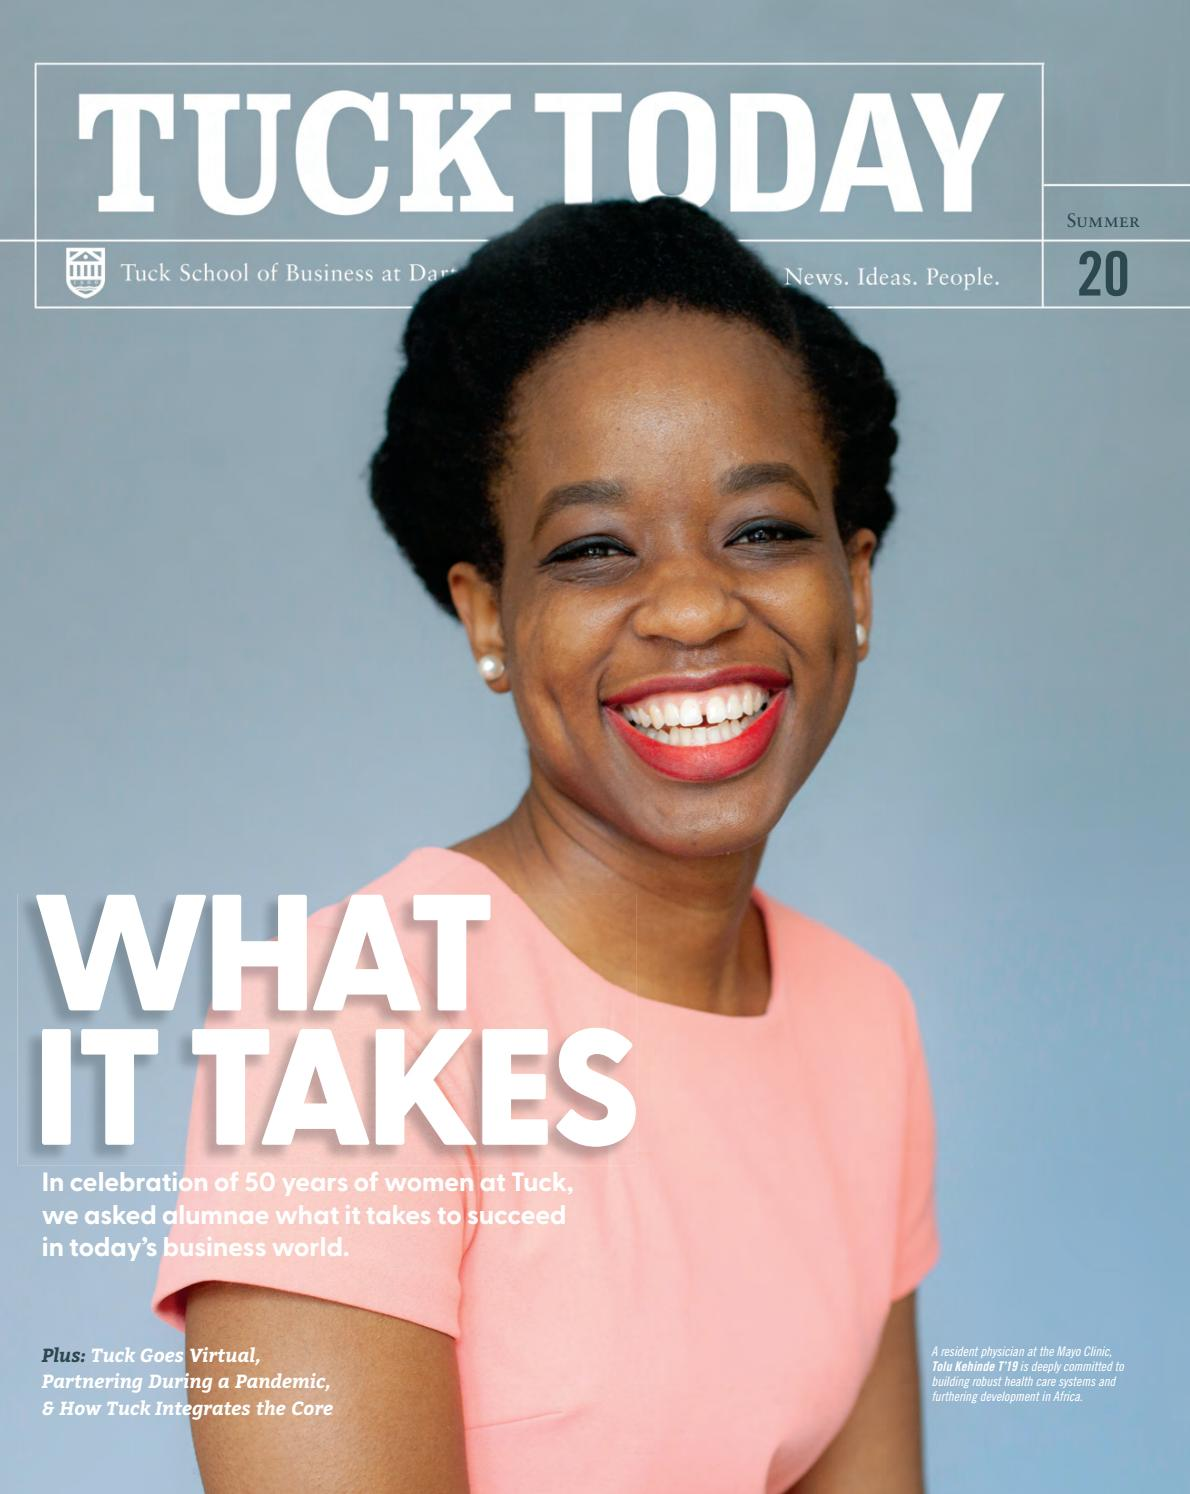 Tuck Today Alumni Magazine Summer 2020 By Tuck School Of Business At Dartmouth Issuu